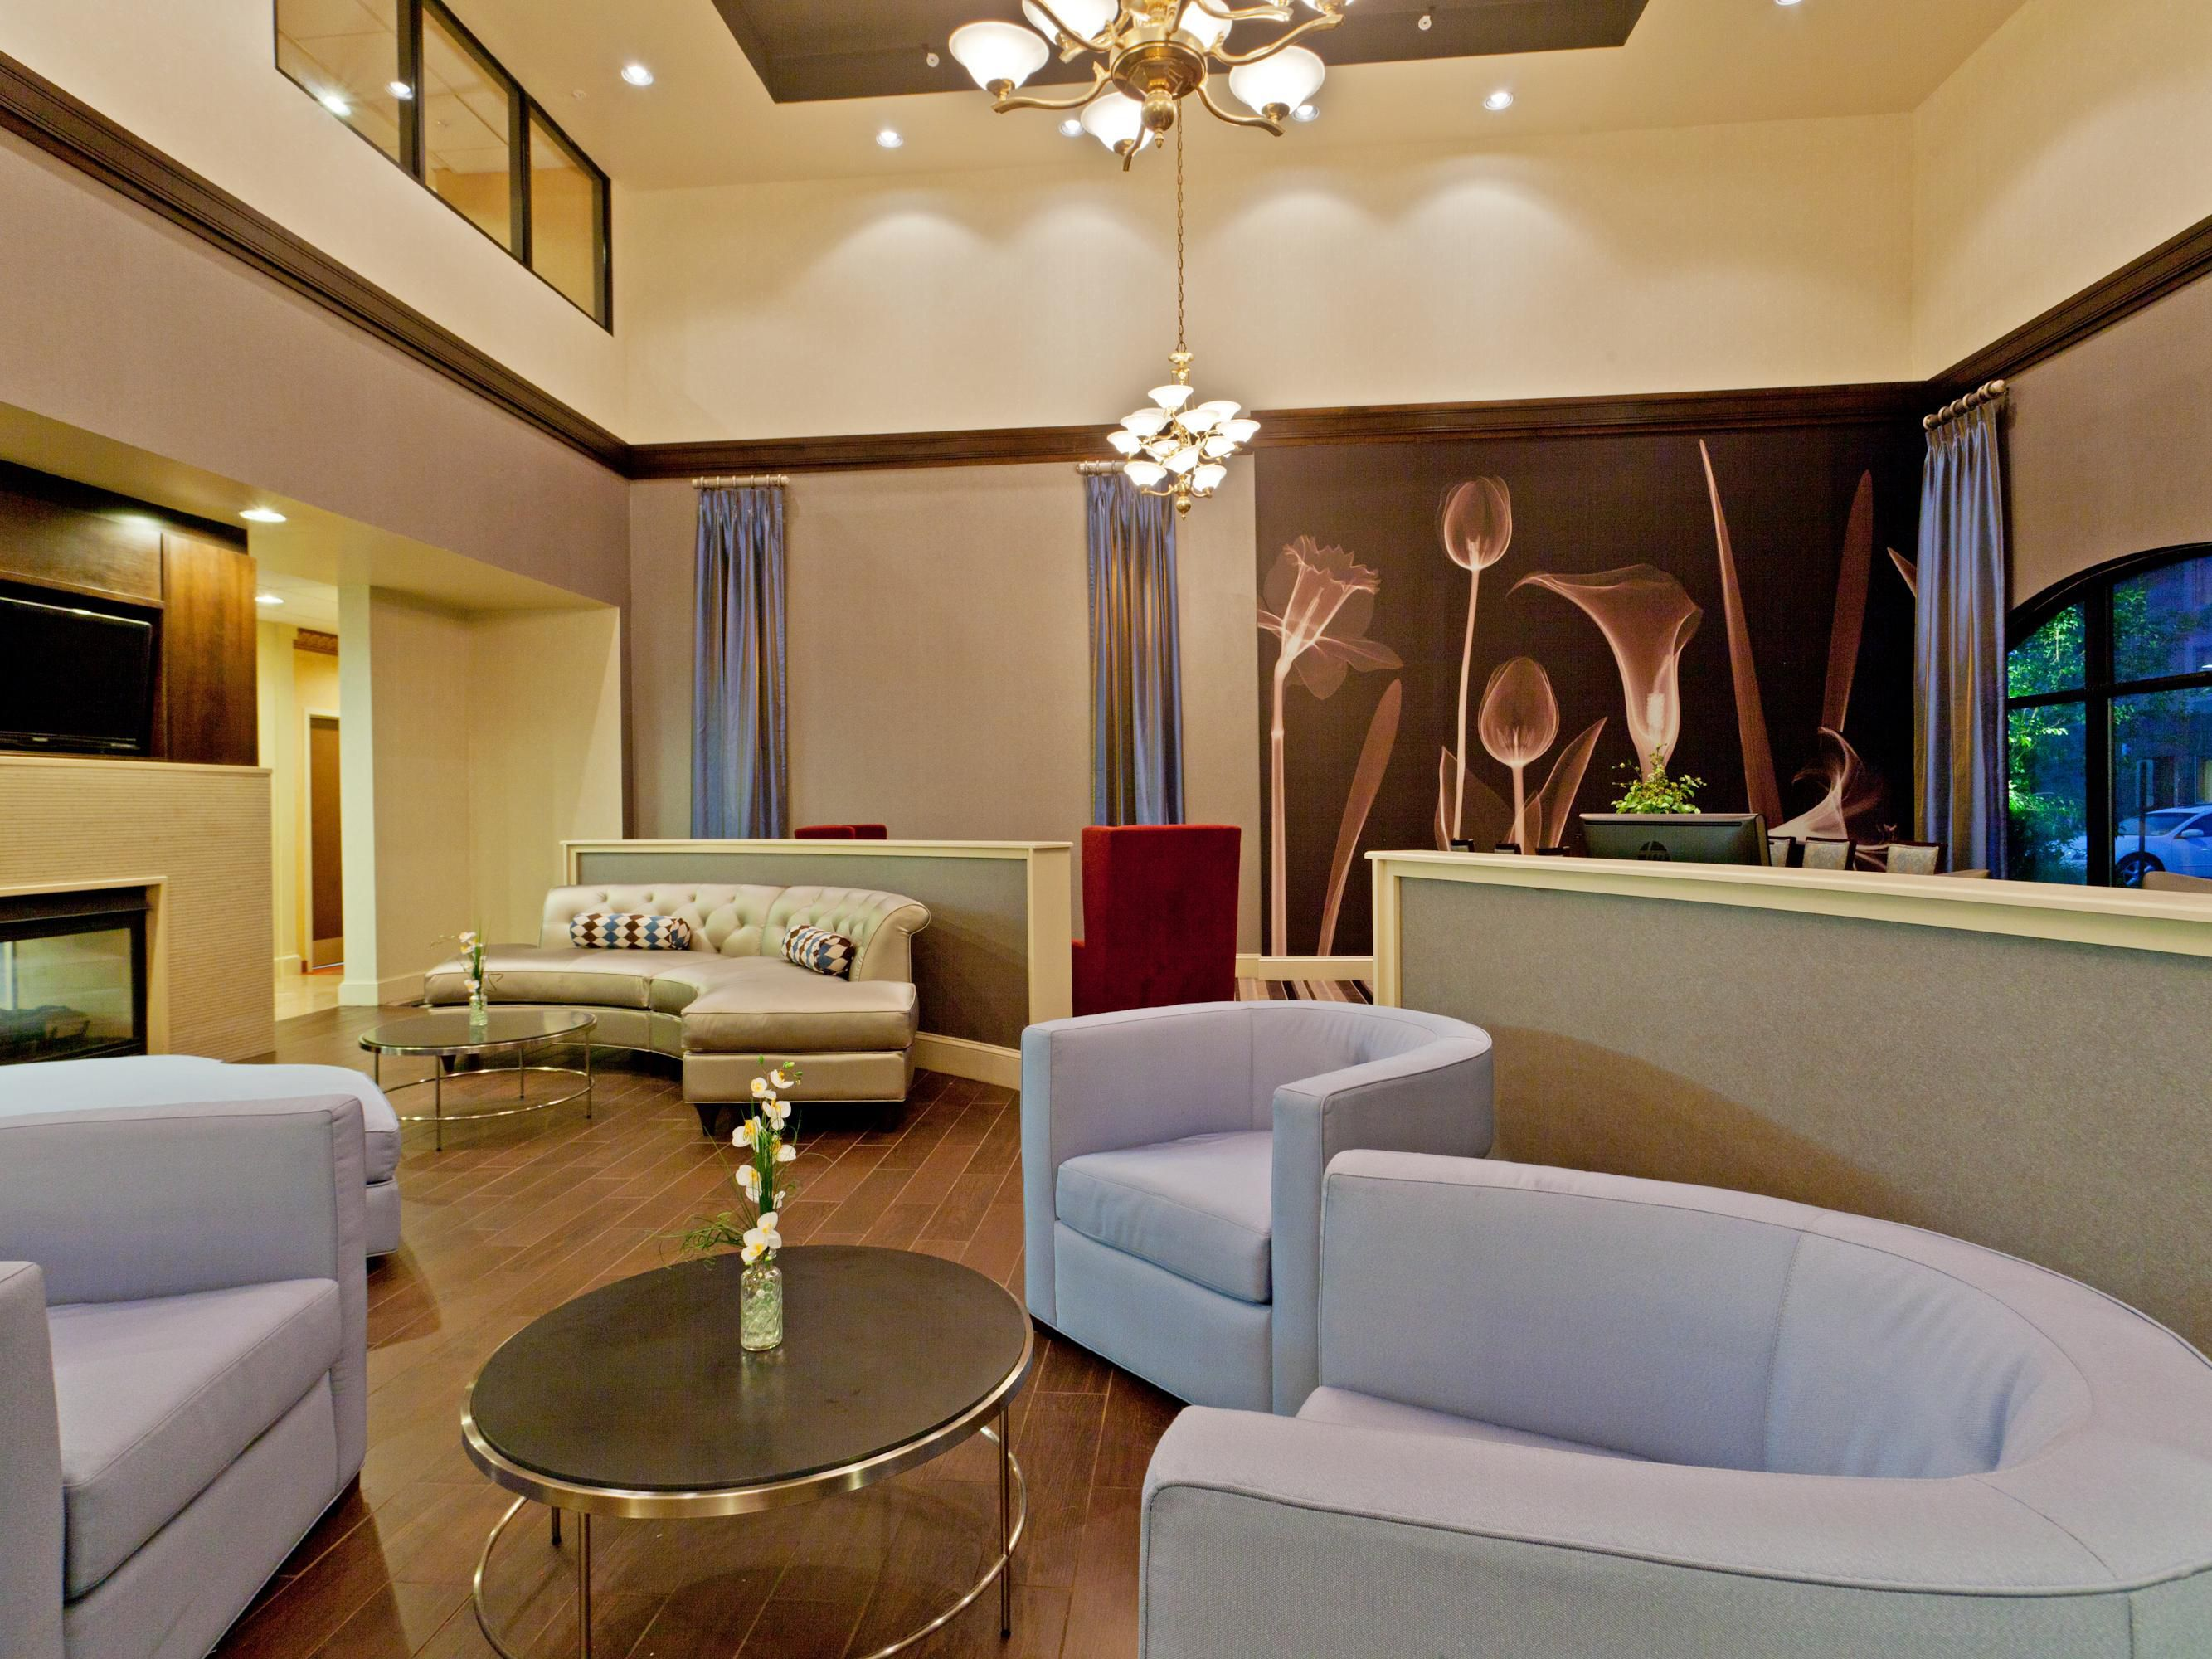 Enjoy your stay in our Modern Lobby